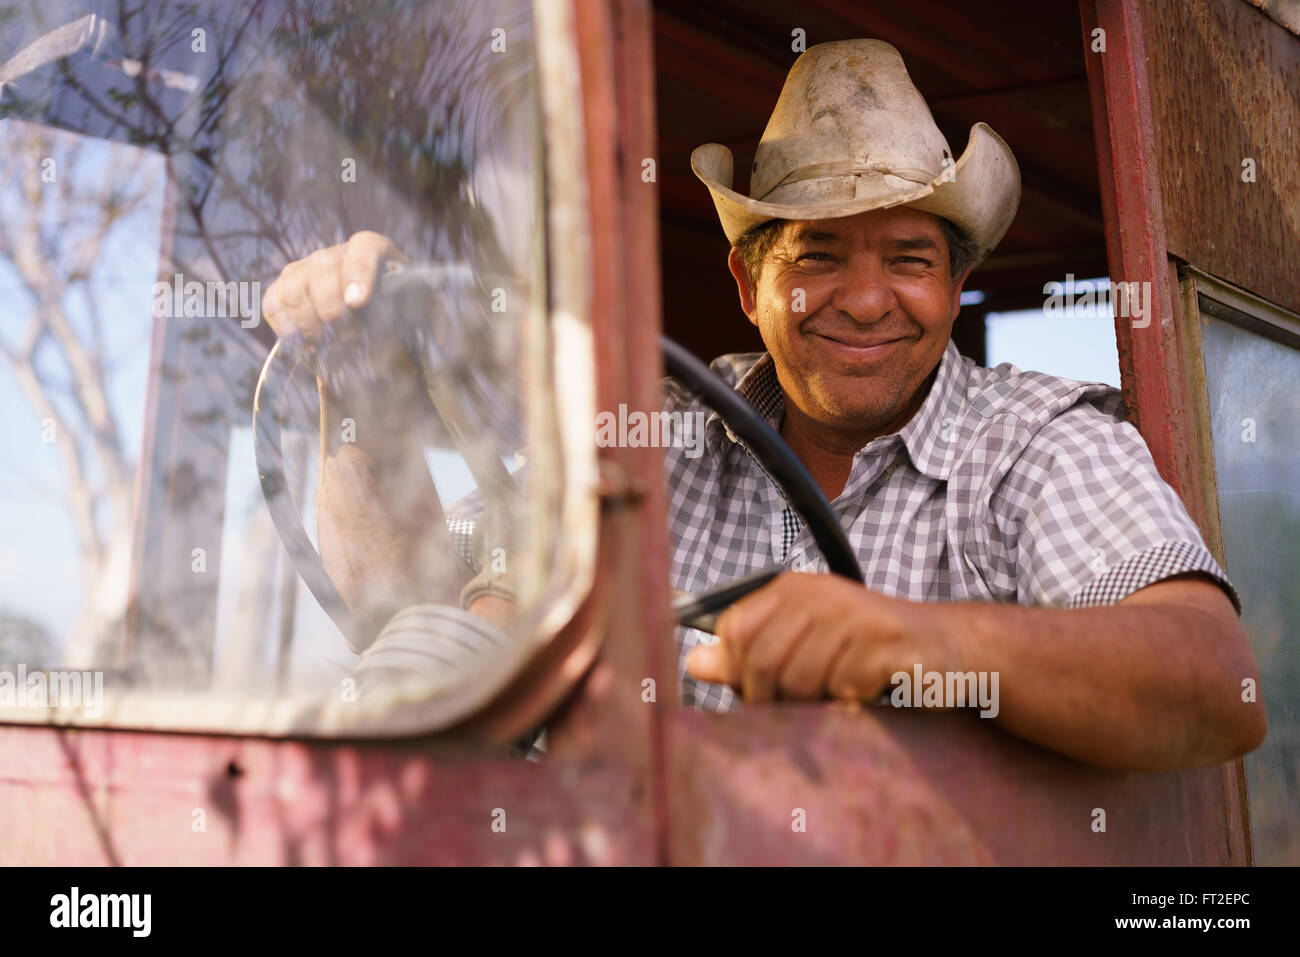 Farming and cultivations in Latin America. Portrait of middle aged hispanic farmer sitting proud in his tractor Stock Photo